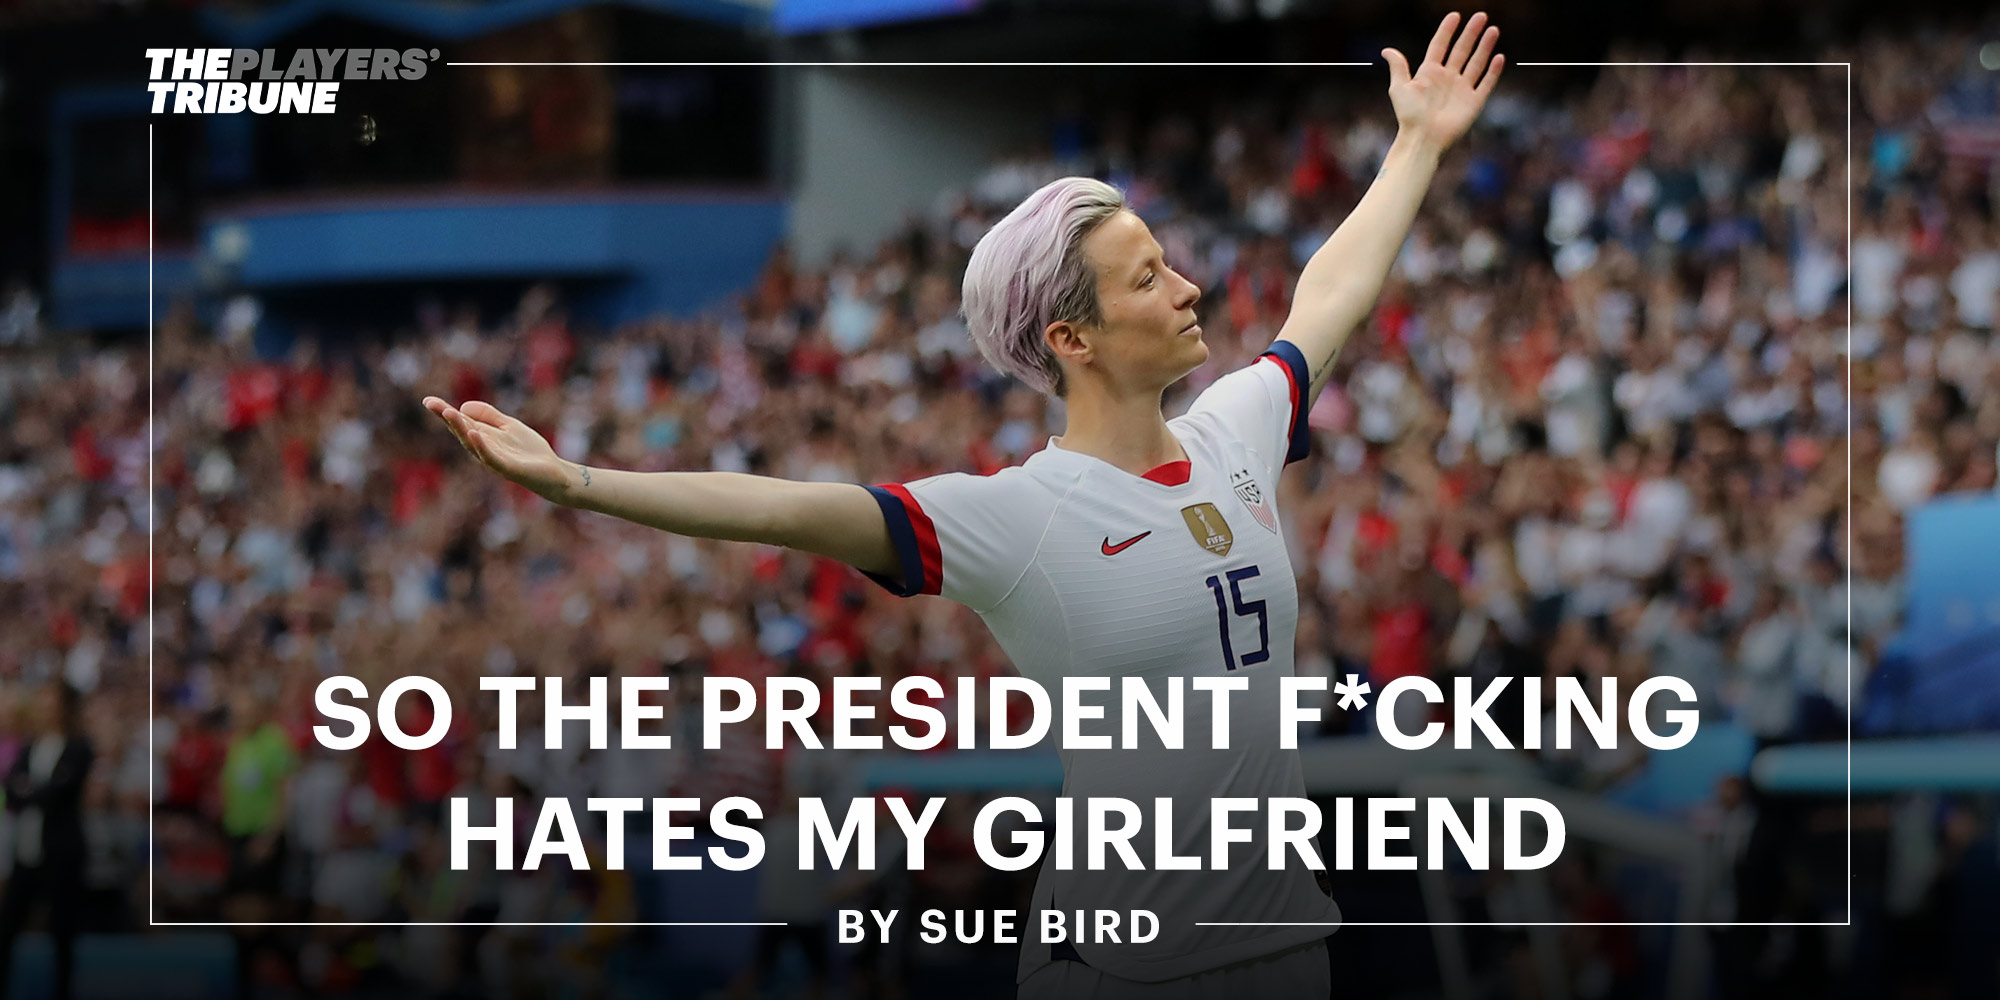 So the President F*cking Hates My Girlfriend | By Sue Bird